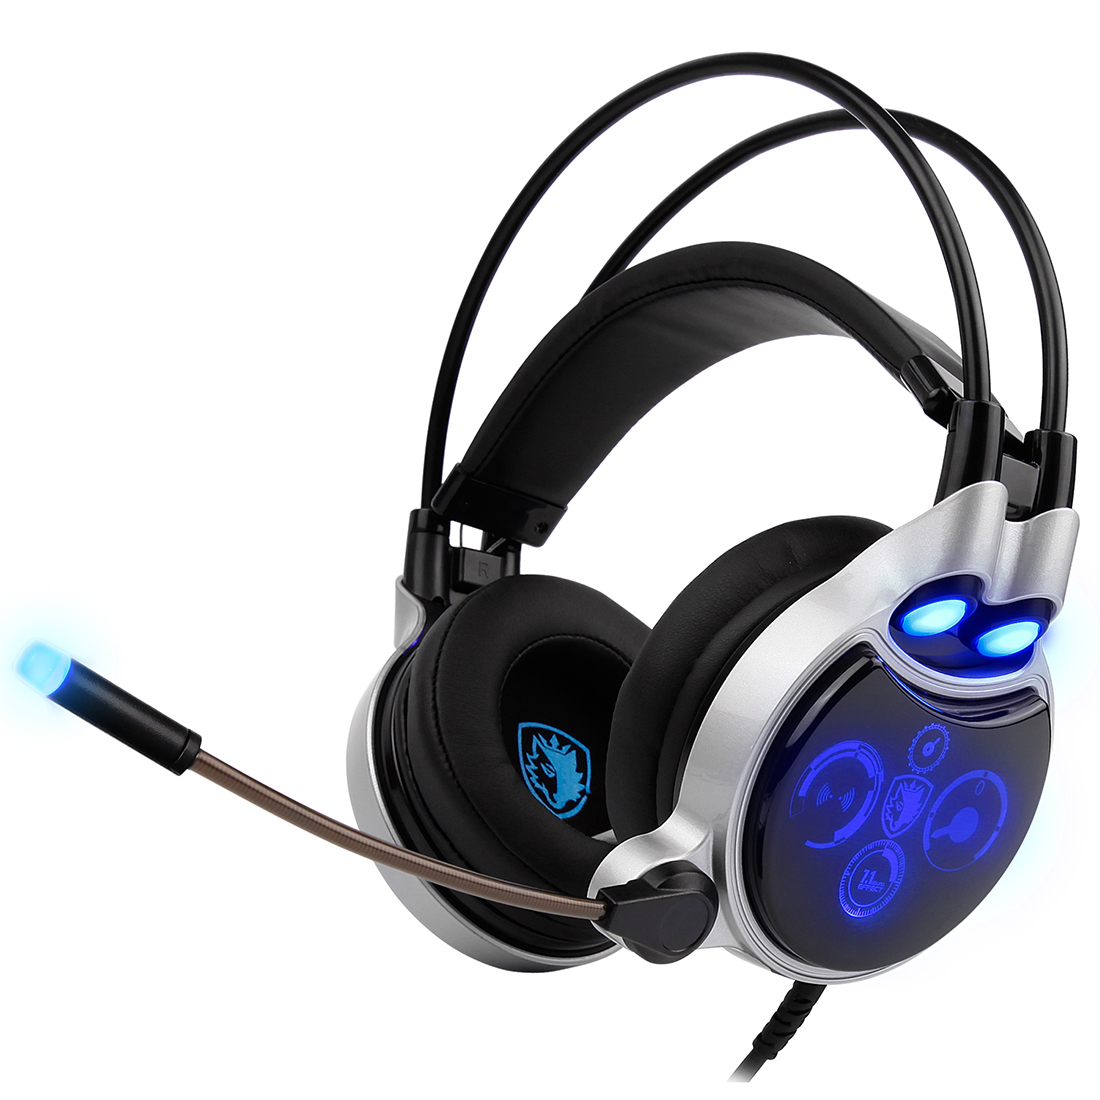 цена на SADES SA-908 USB Gaming Headset Equipped with Digital 7.1 Channel Surround Sound